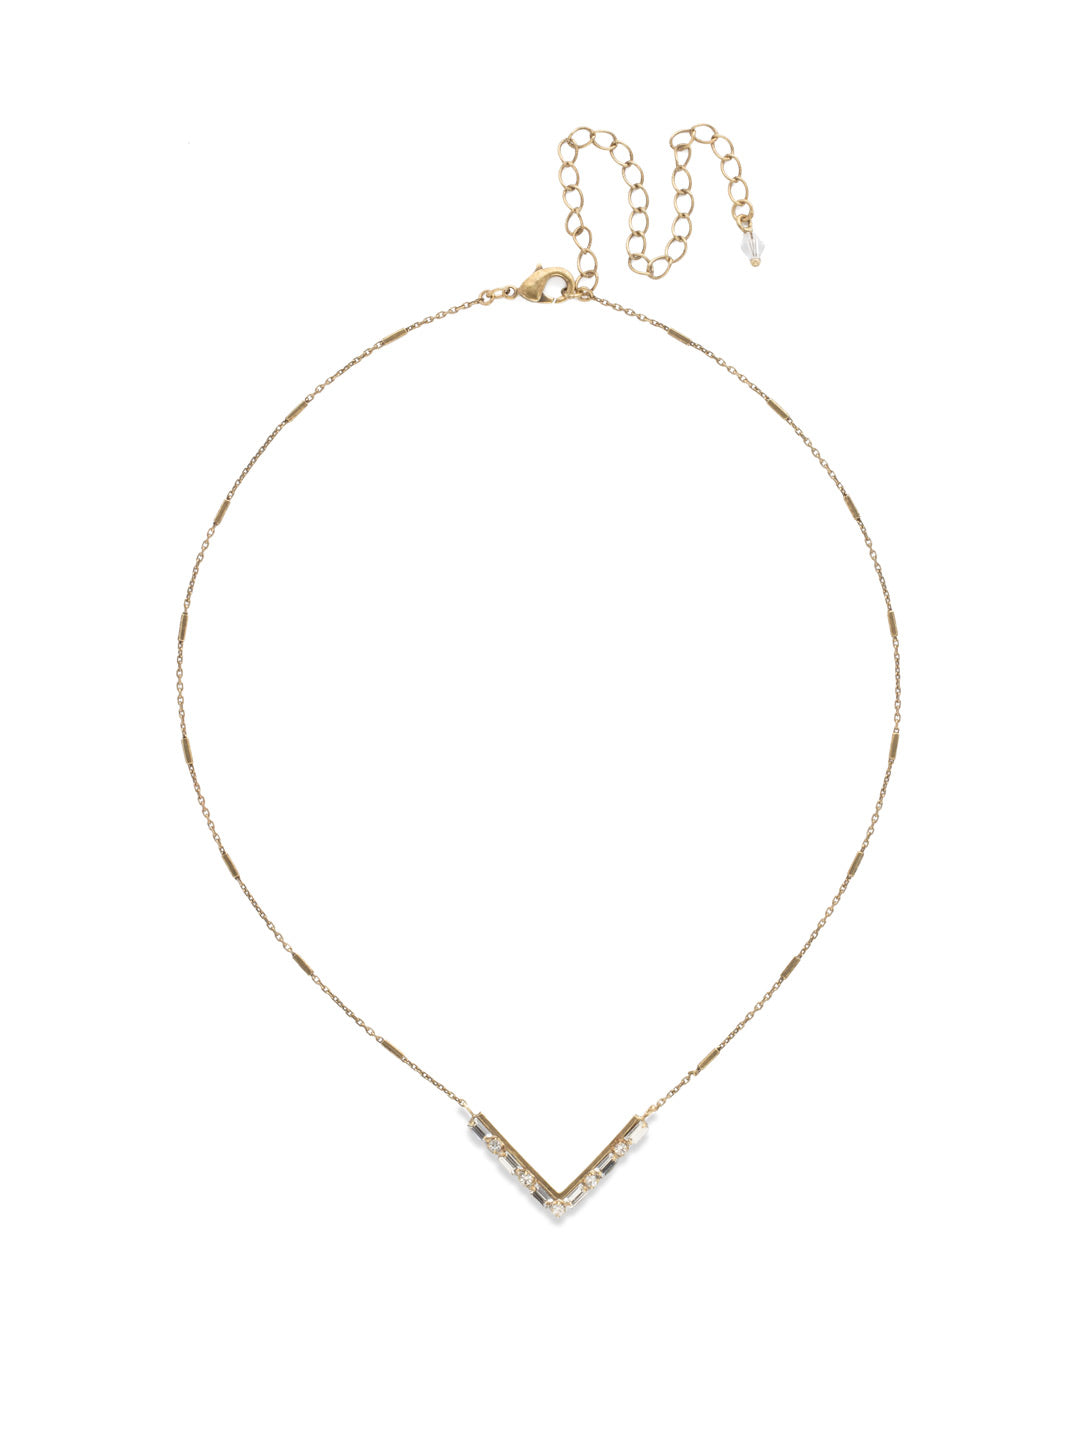 Chevron Pendant Necklace - NDM9AGCRY